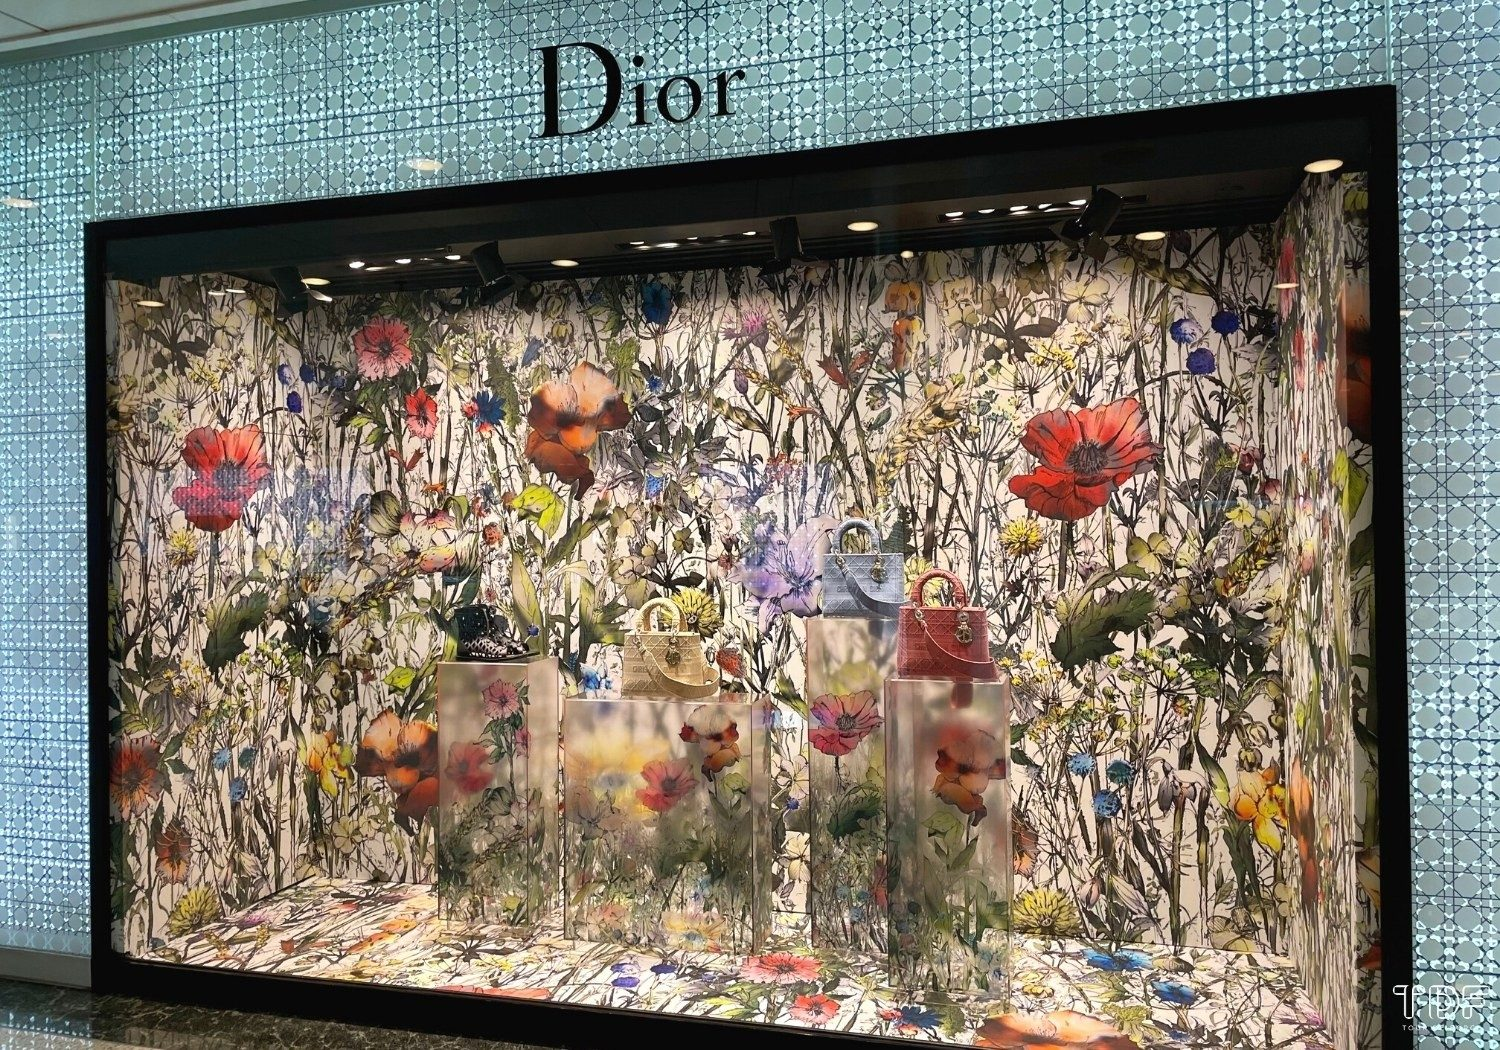 Store window, window display, Dior SS21 Ready-to-Wear collection, Visual merchandising